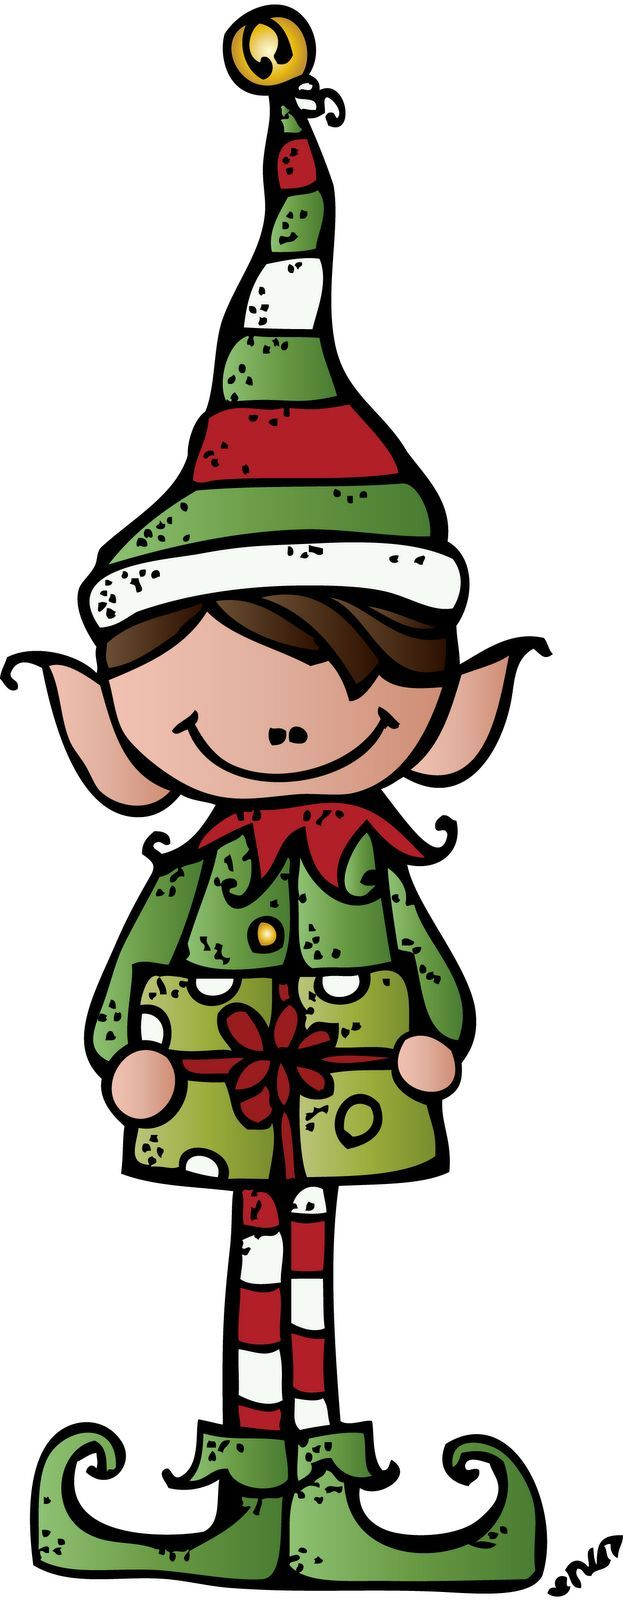 623x1600 Elf On The Shelf Clip Art